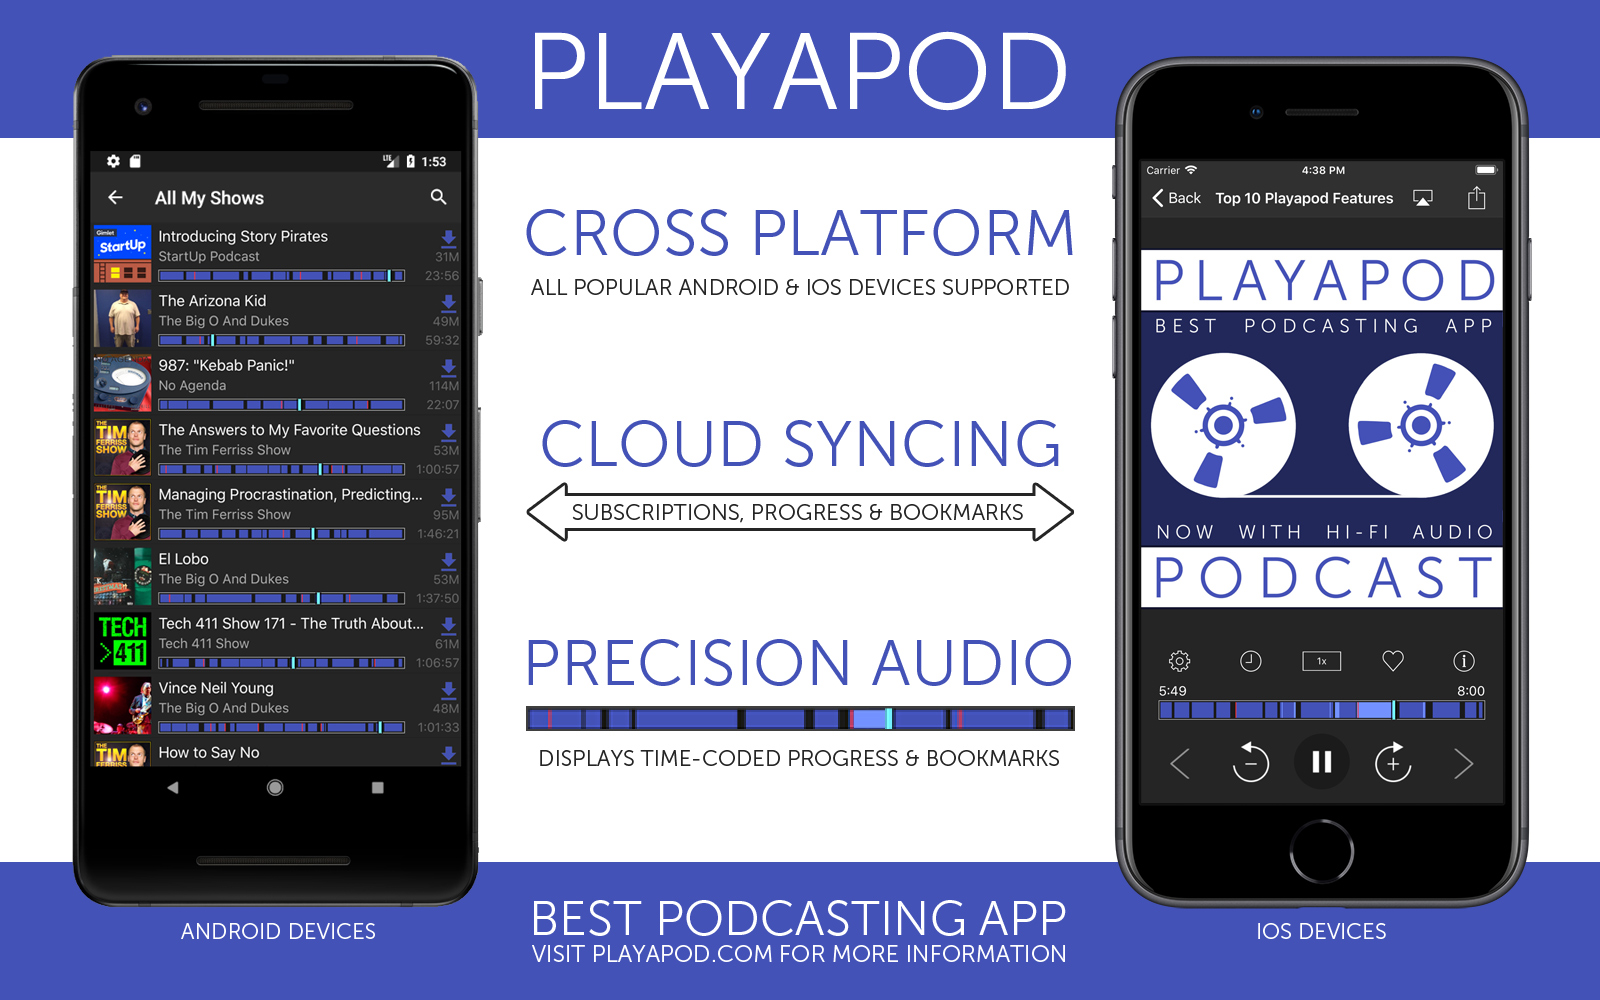 Playapod: Cross-Platform Podcasting App